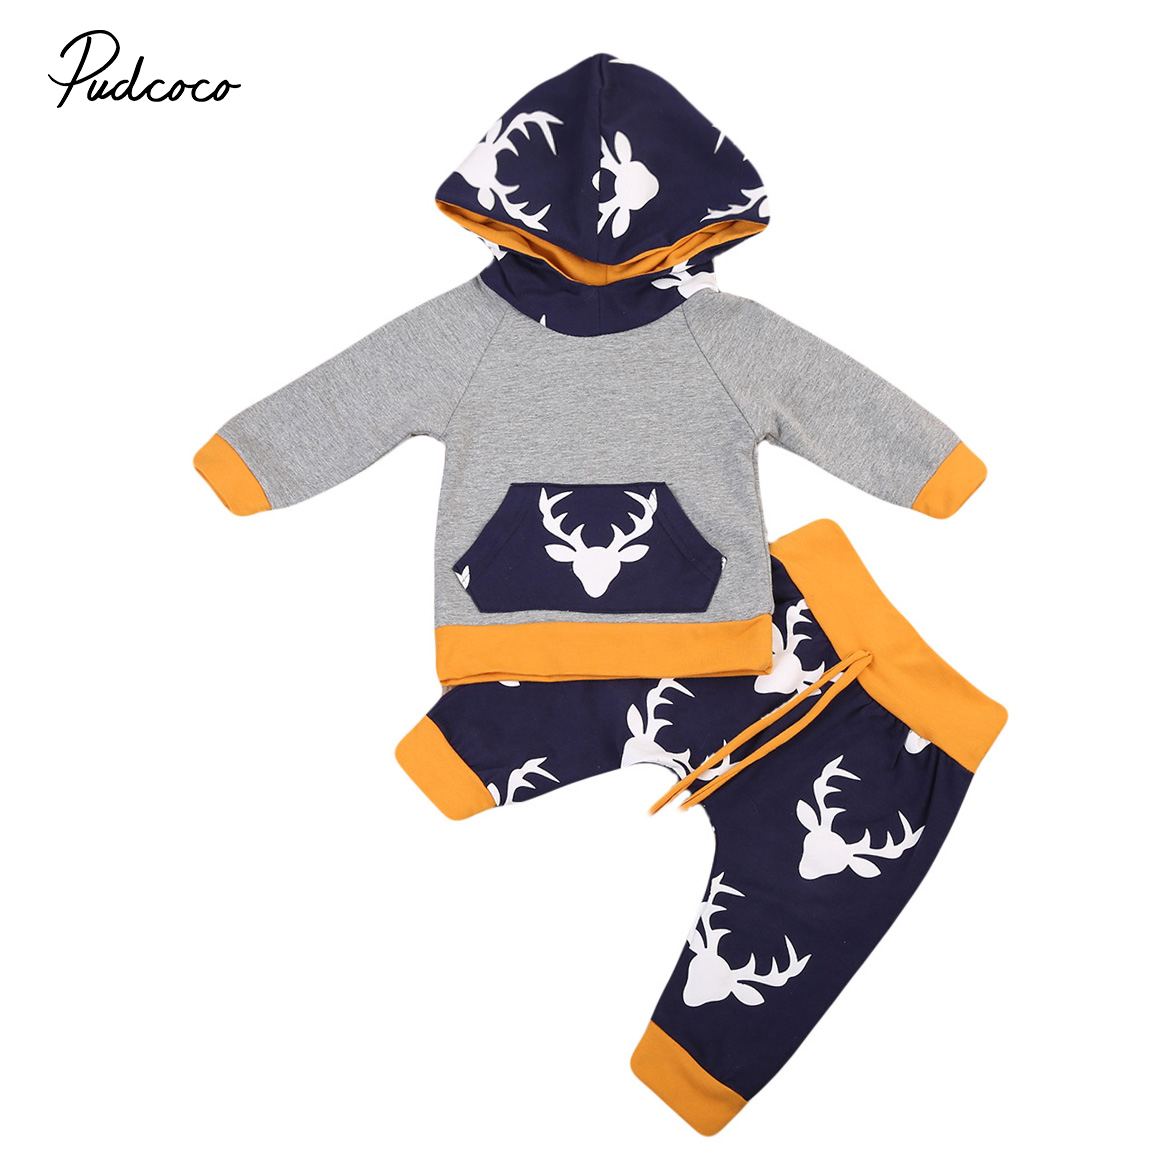 Adorable 2PCS Autumn Winter Newborn Baby Boy Girl Deer Hooded Outfits Warm Cotton Sweater Tops Pants Leggings Clothes Set